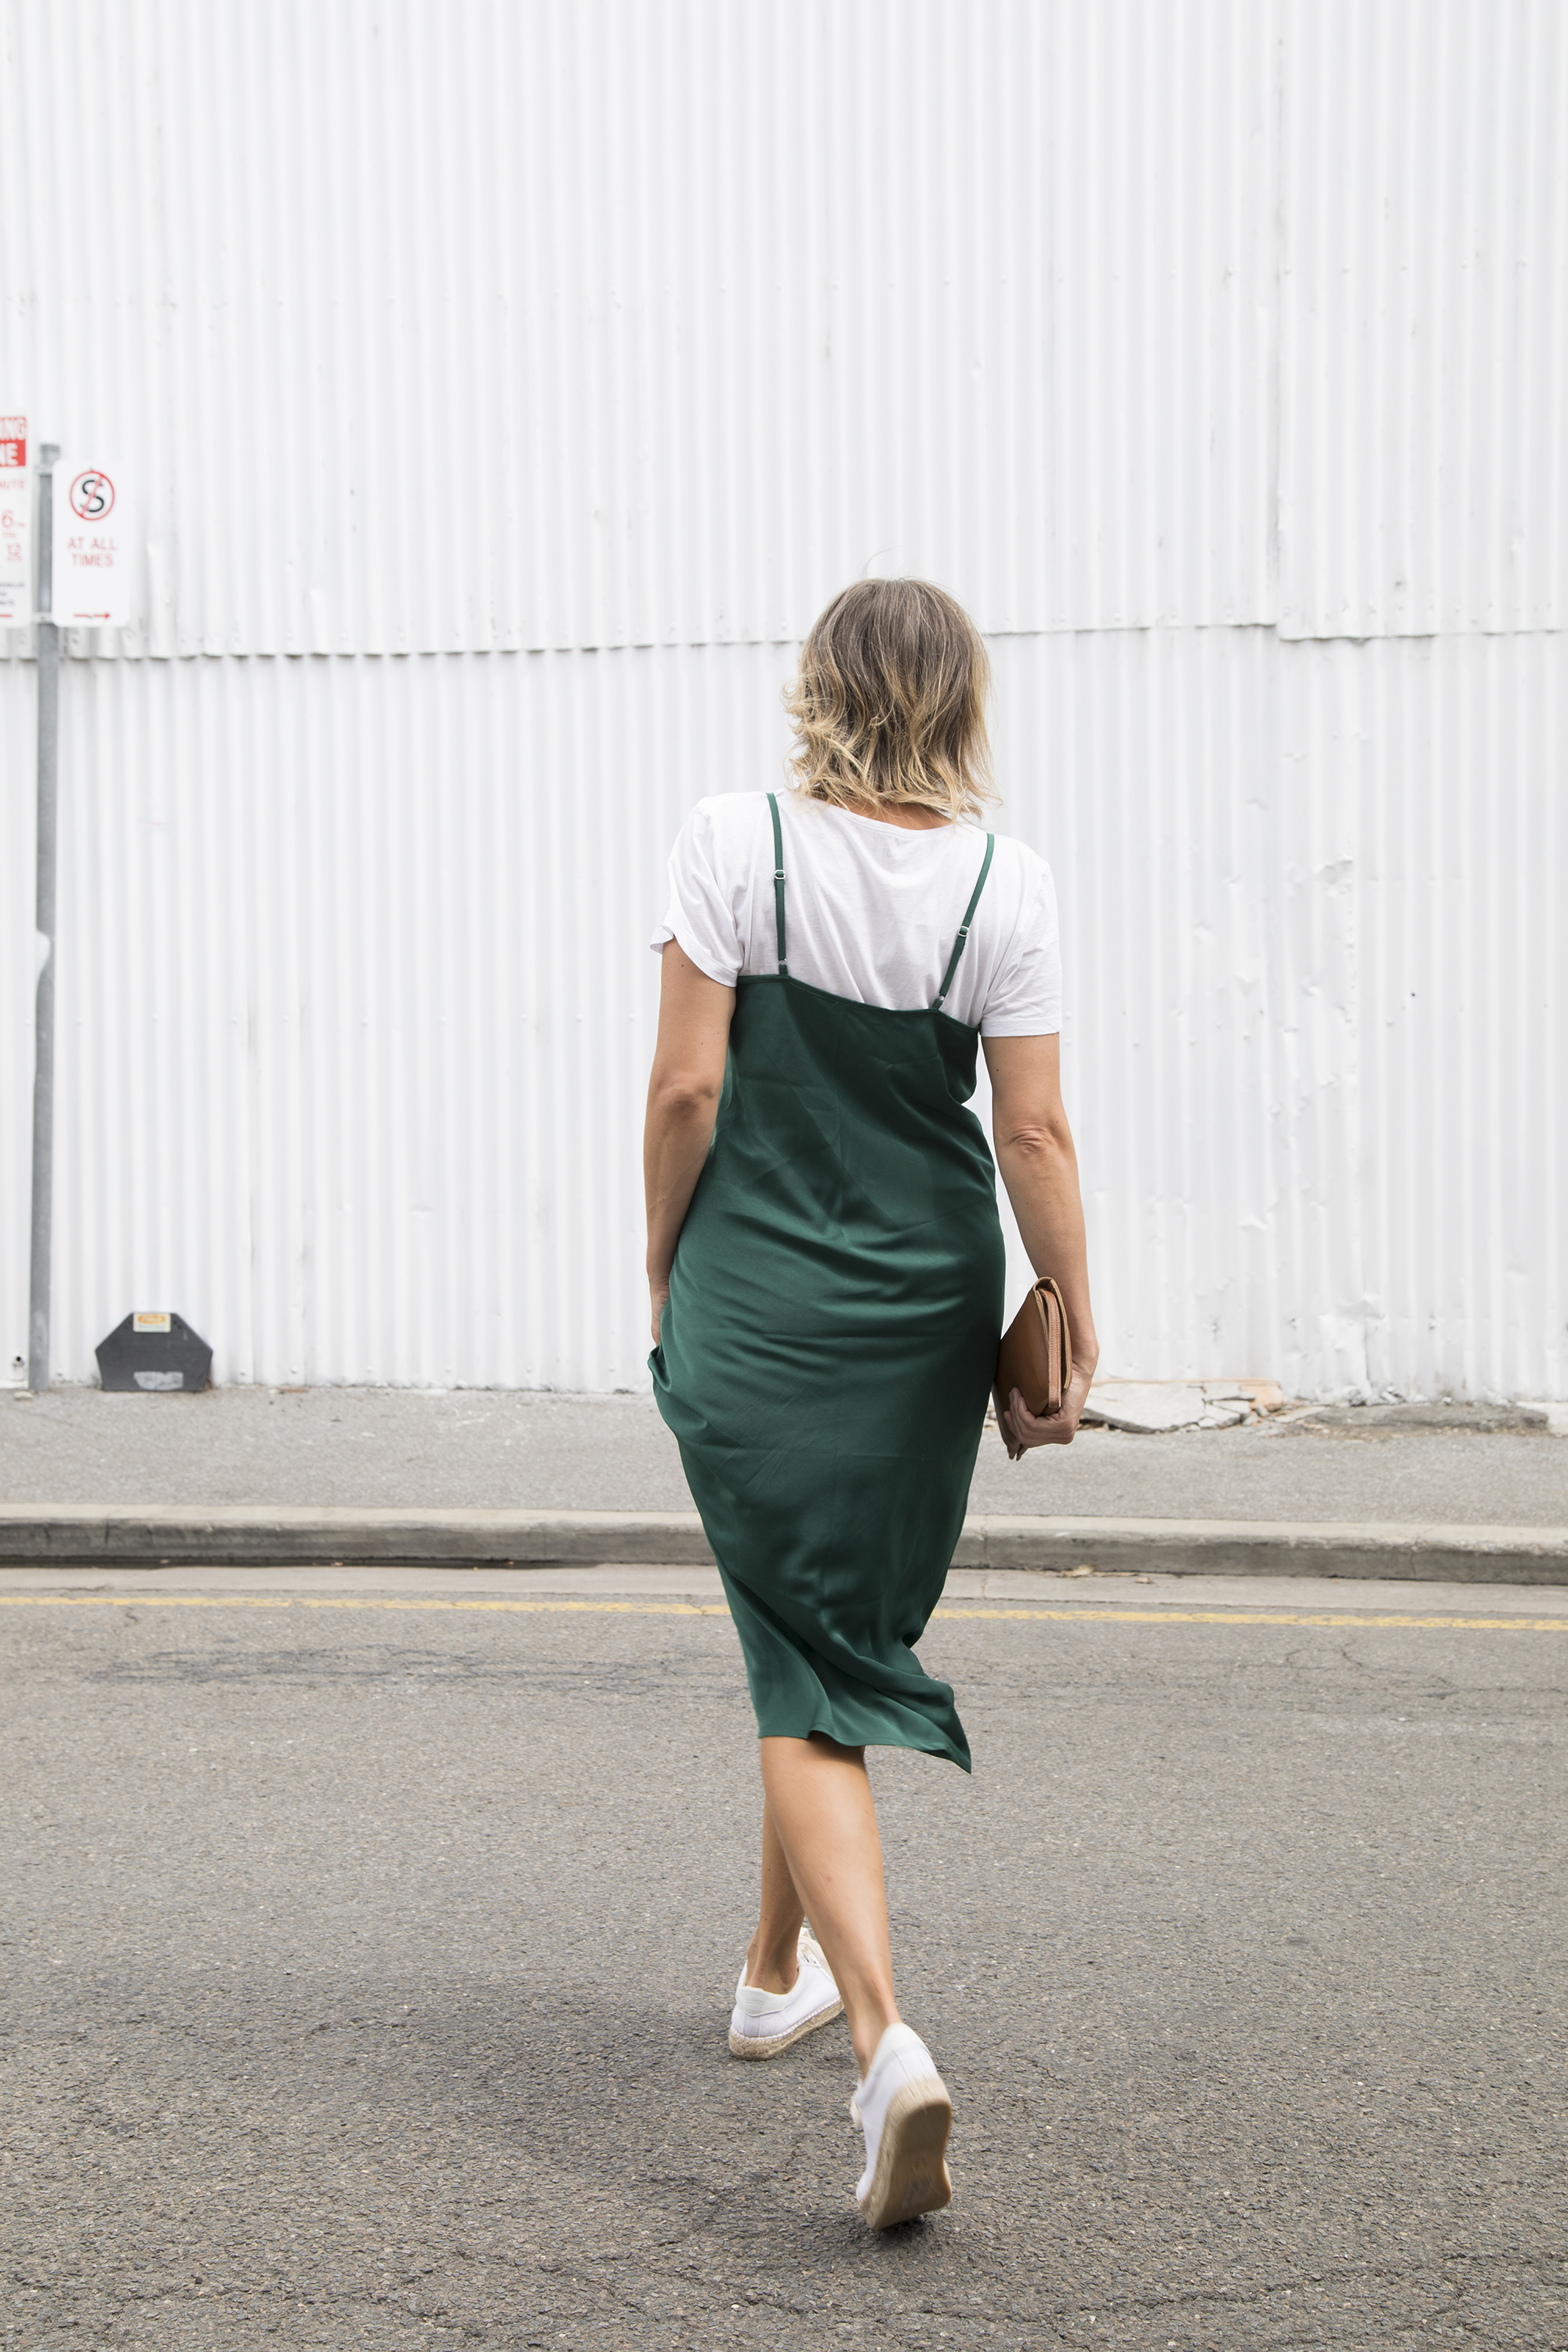 Sneakers_and_Soul_Green_Dress_01.jpg